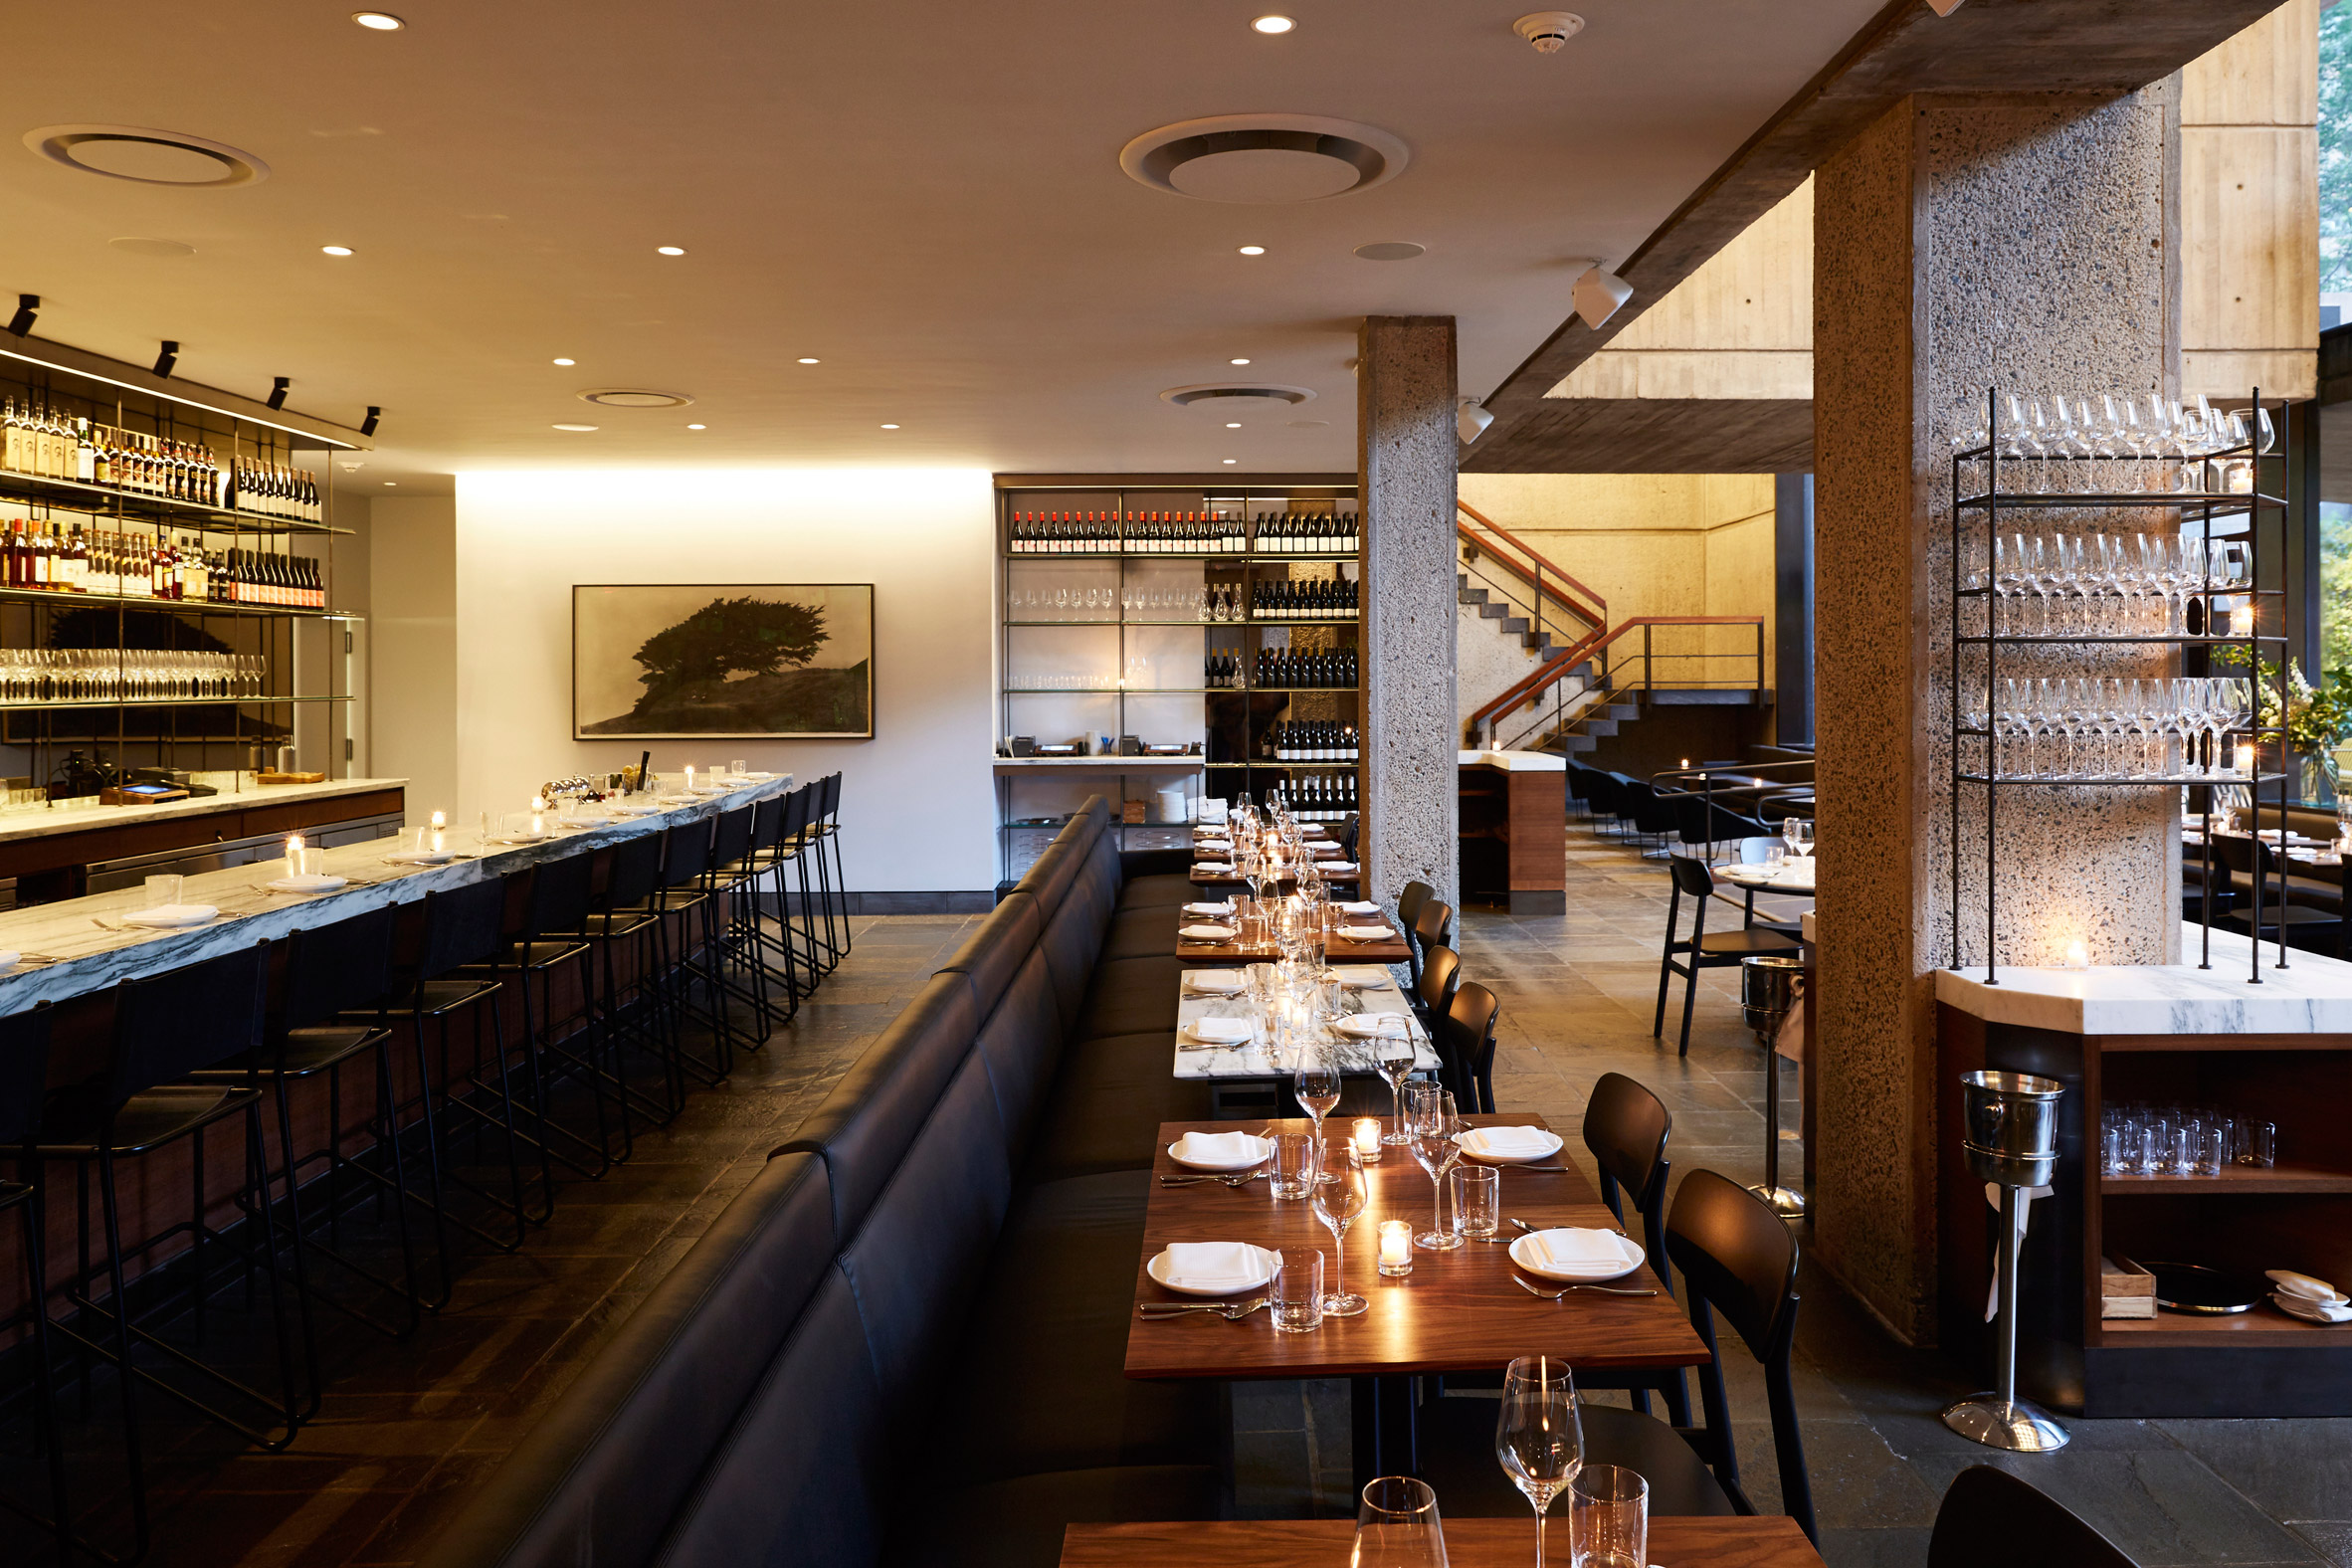 flora-bar-cafe-restaurant-interior-design-beyer-blinder-belle-met-breuer-new-york-city-usa_dezeen_2364_col_3-1